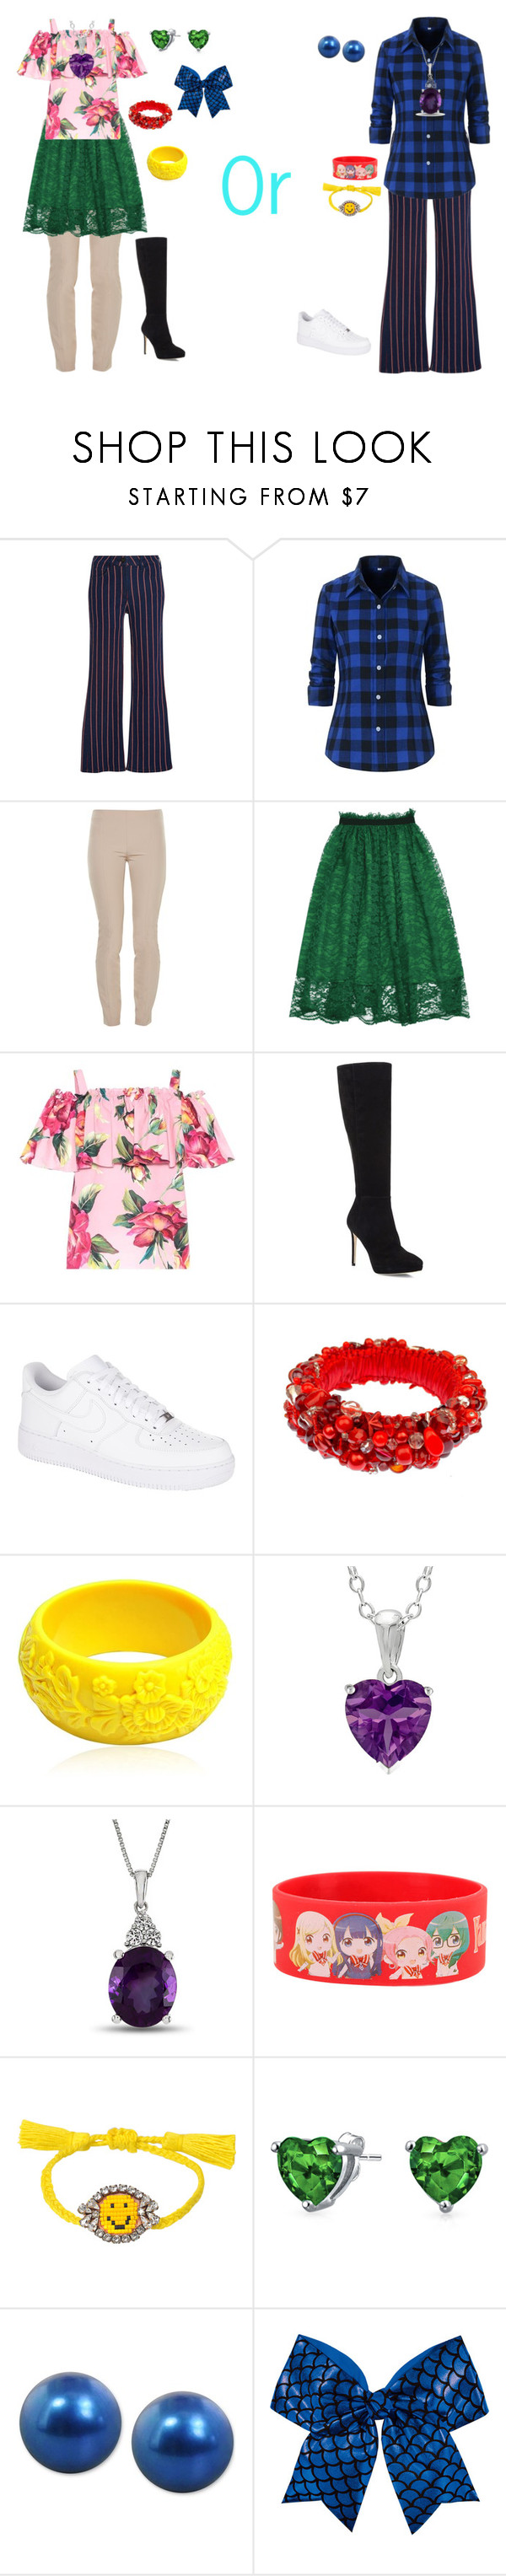 """""""Girly Girl vs Tomboy: Stadium outfits"""" by sierra-ivy on Polyvore featuring E L L E R Y, The Row, Dolce&Gabbana, Jimmy Choo, NIKE, Mariah Rovery, Hot Topic, Shourouk, Bling Jewelry and Honora"""